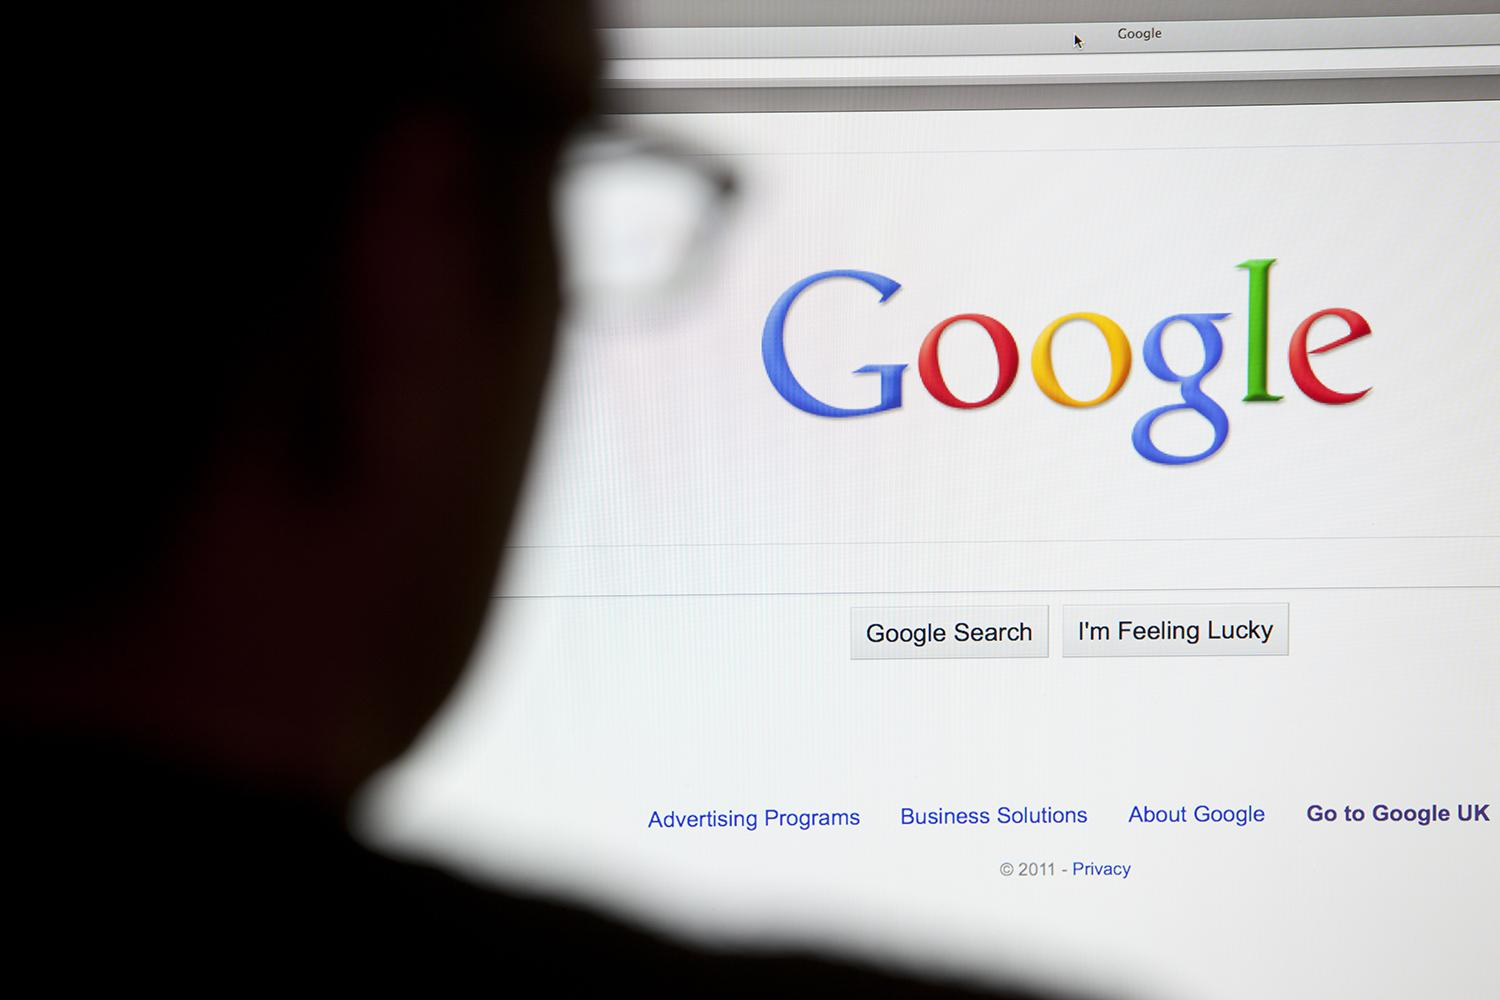 4 Google SEO Best Practices to Help Get Your Small Business Noticed